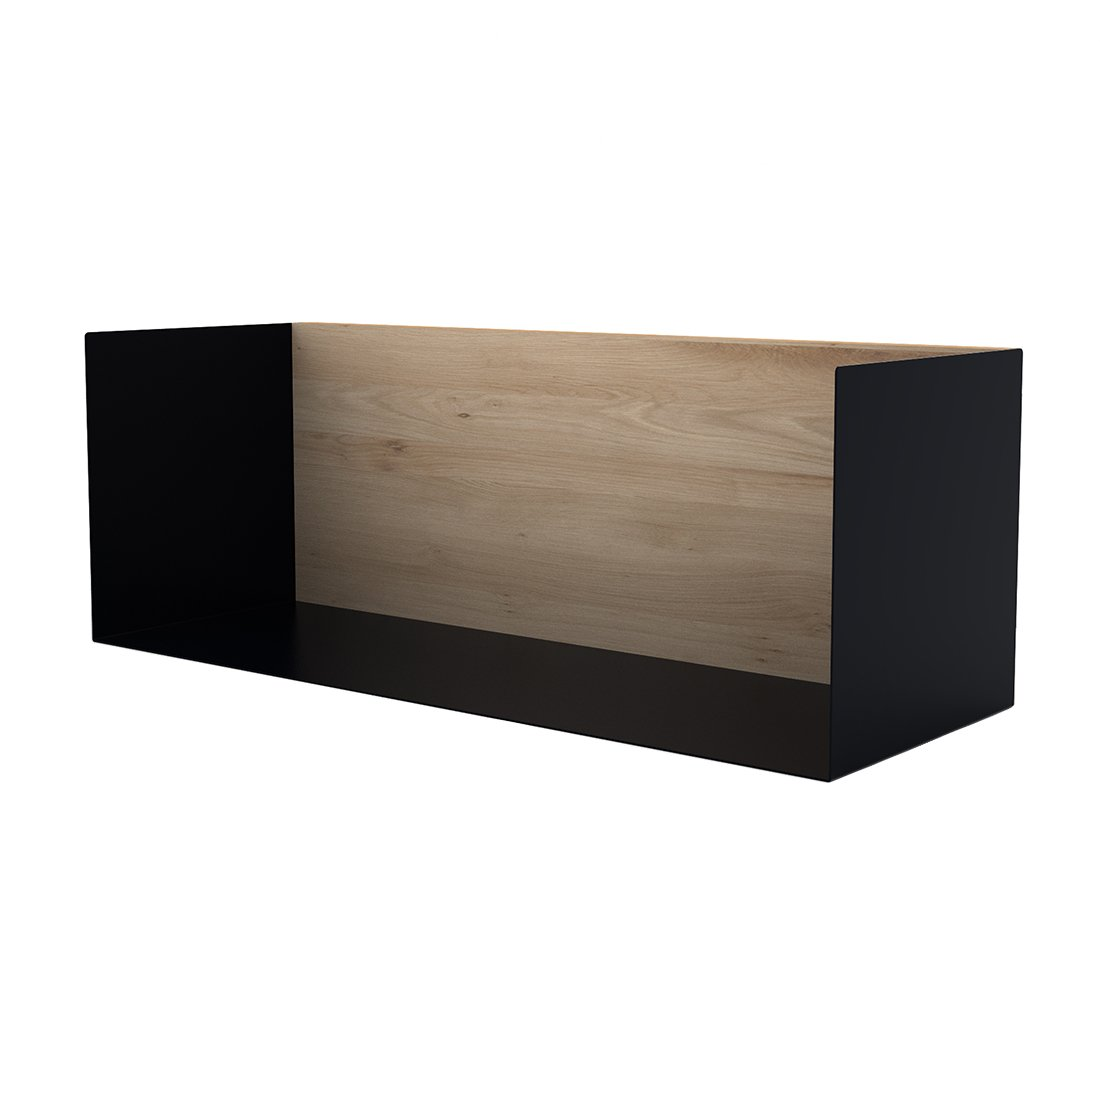 Ethnicraft U-Shelf Wandplank Zwart Medium